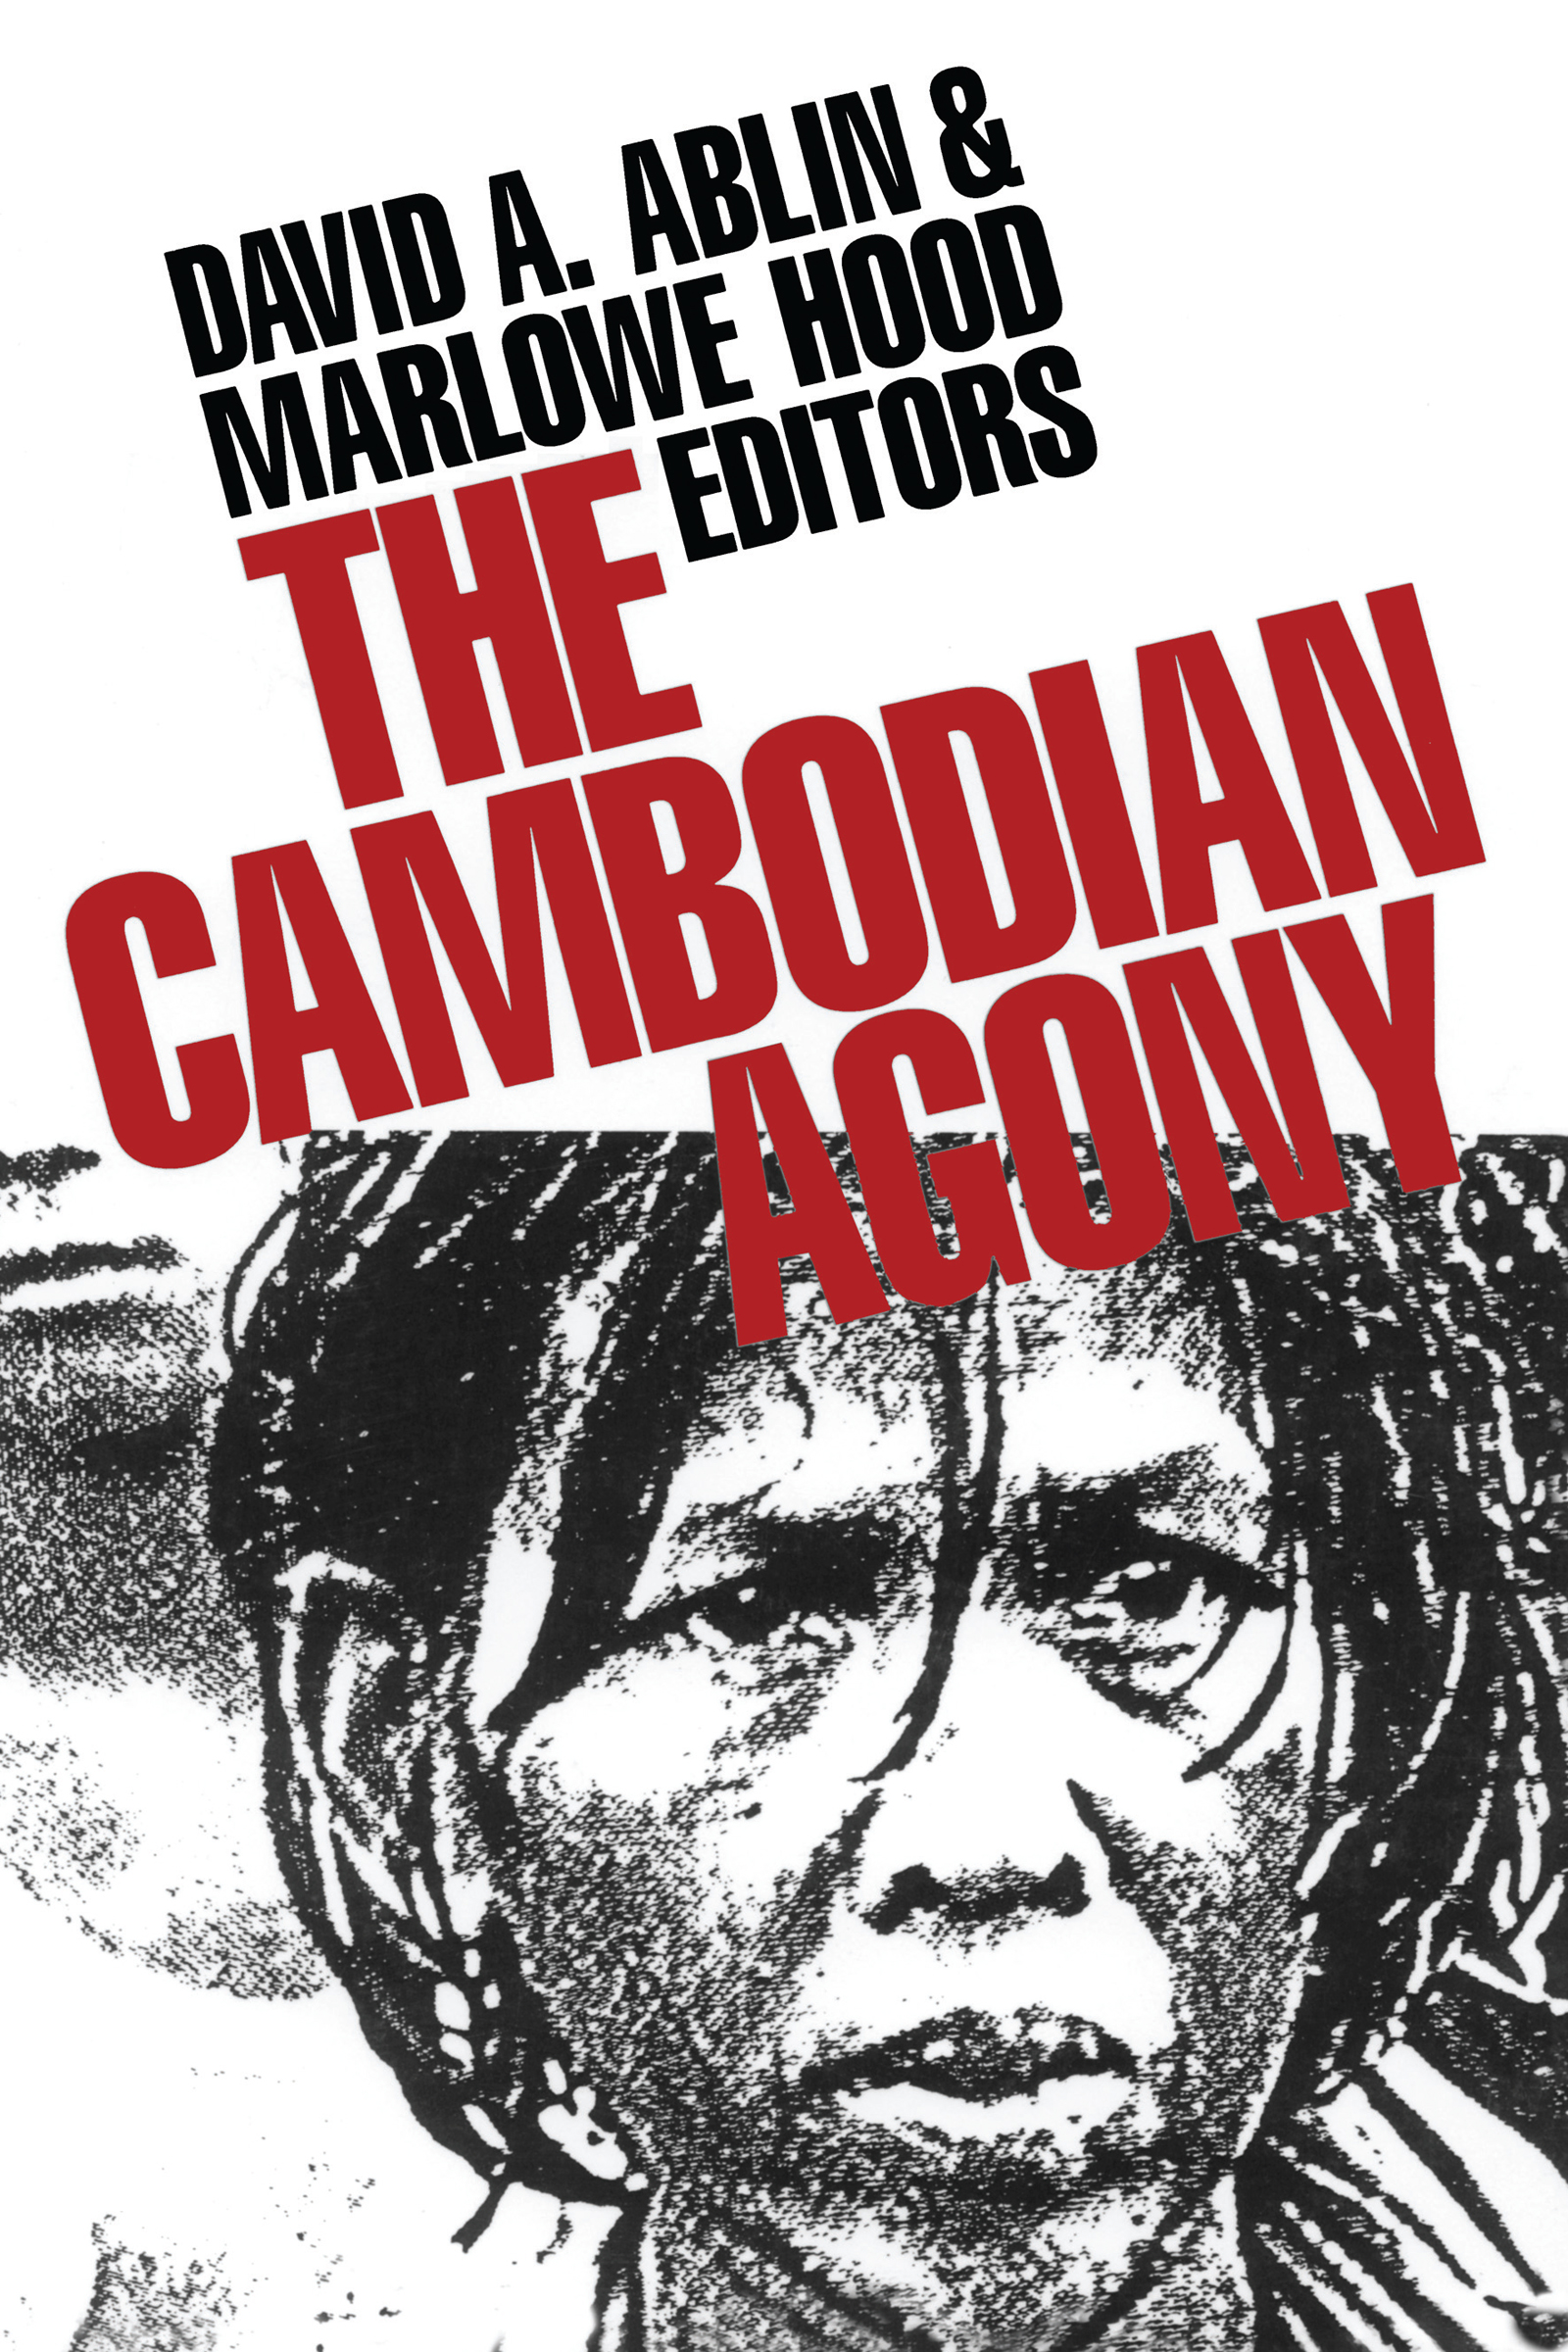 Revival: The Cambodian Agony (1990) book cover